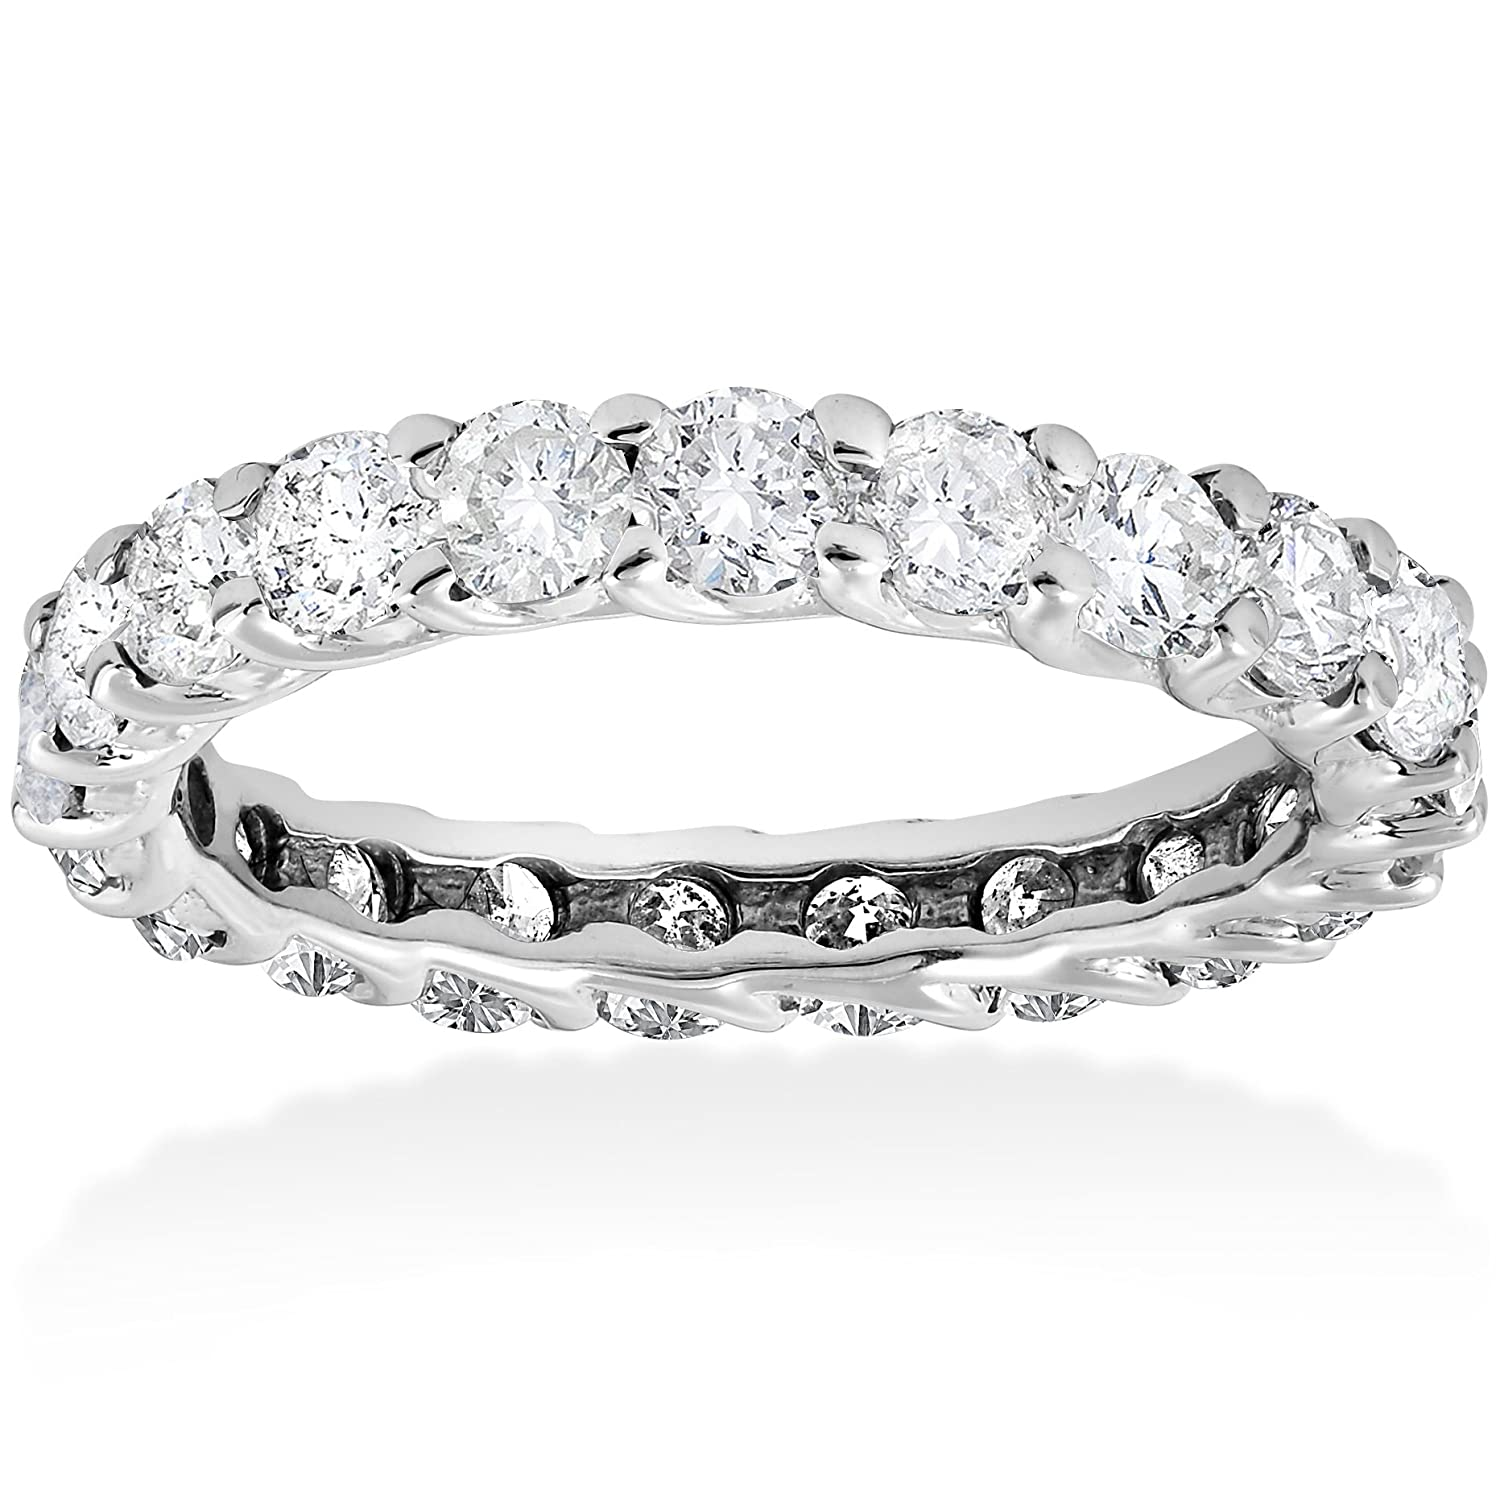 3ct trellis diamond eternity ring 14k white gold jewelry